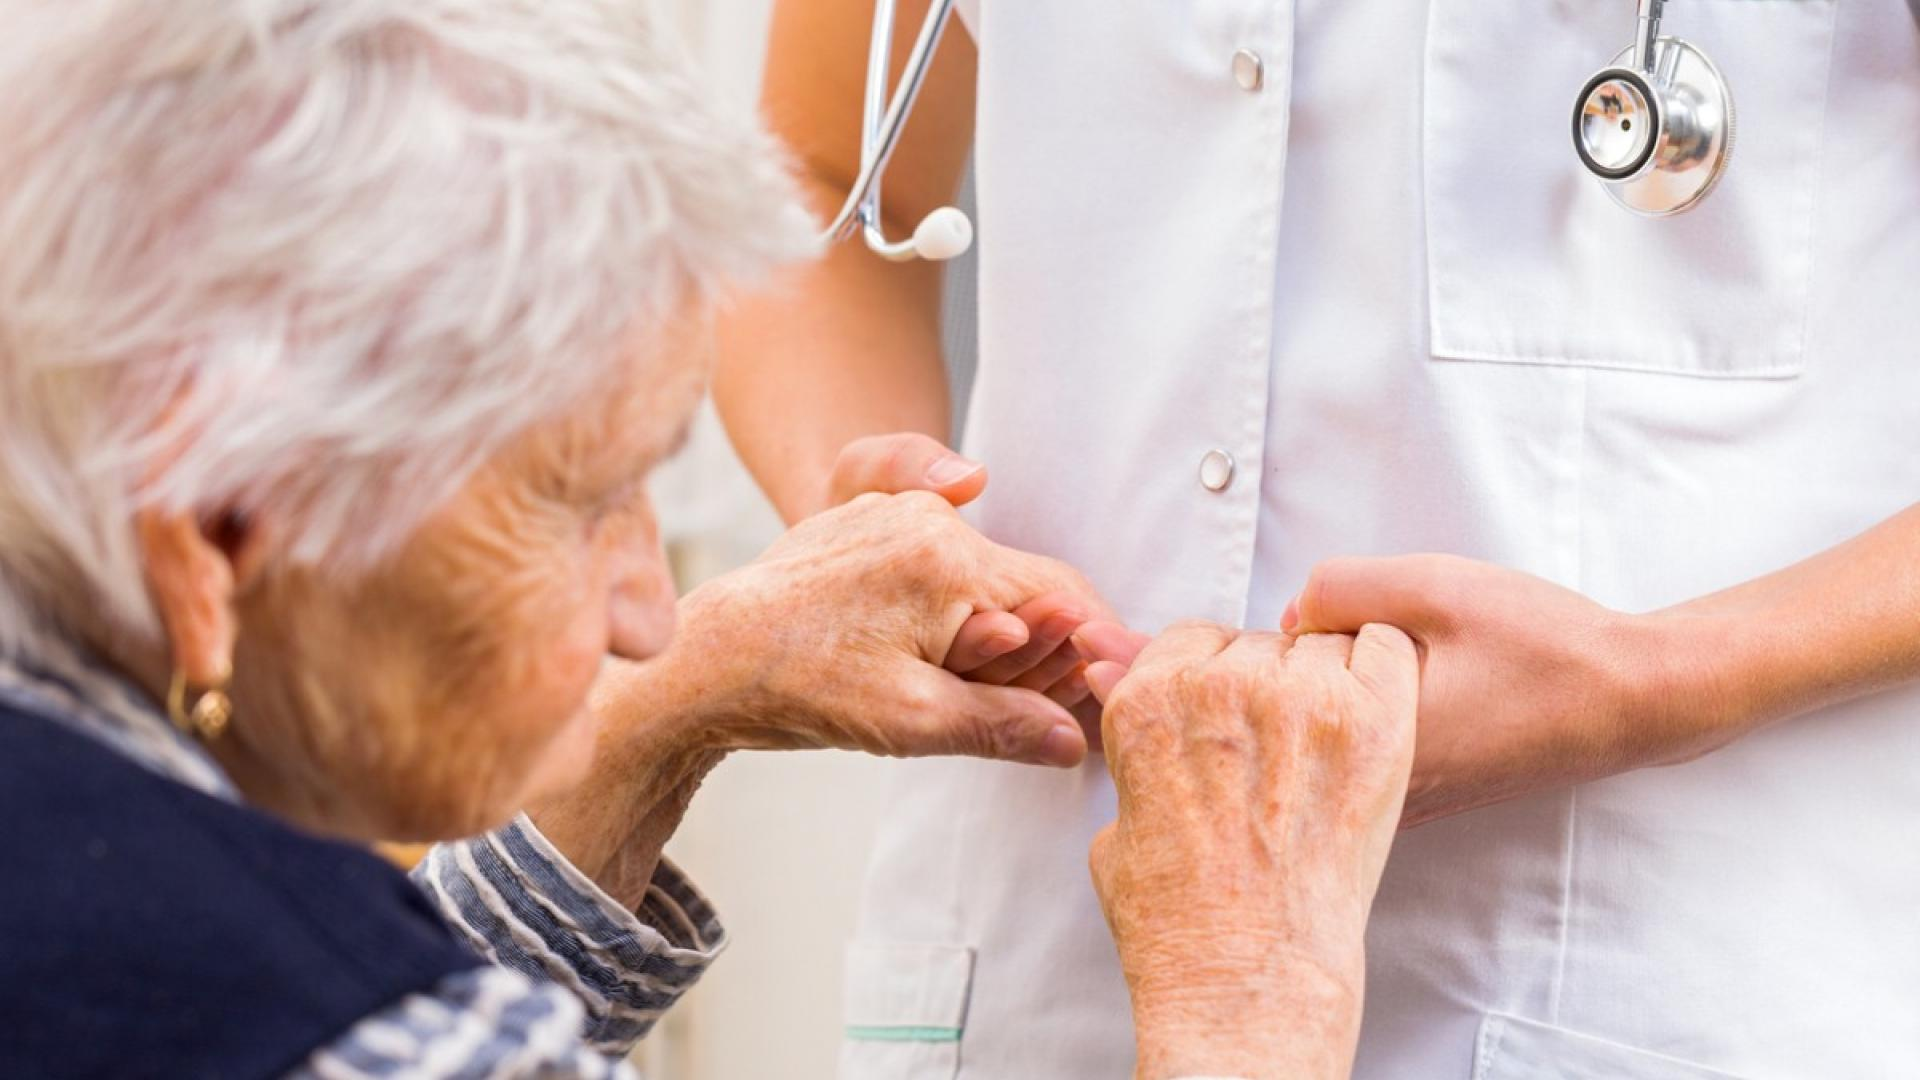 Major breakthrough in Parkinson's disease could lead to a cure